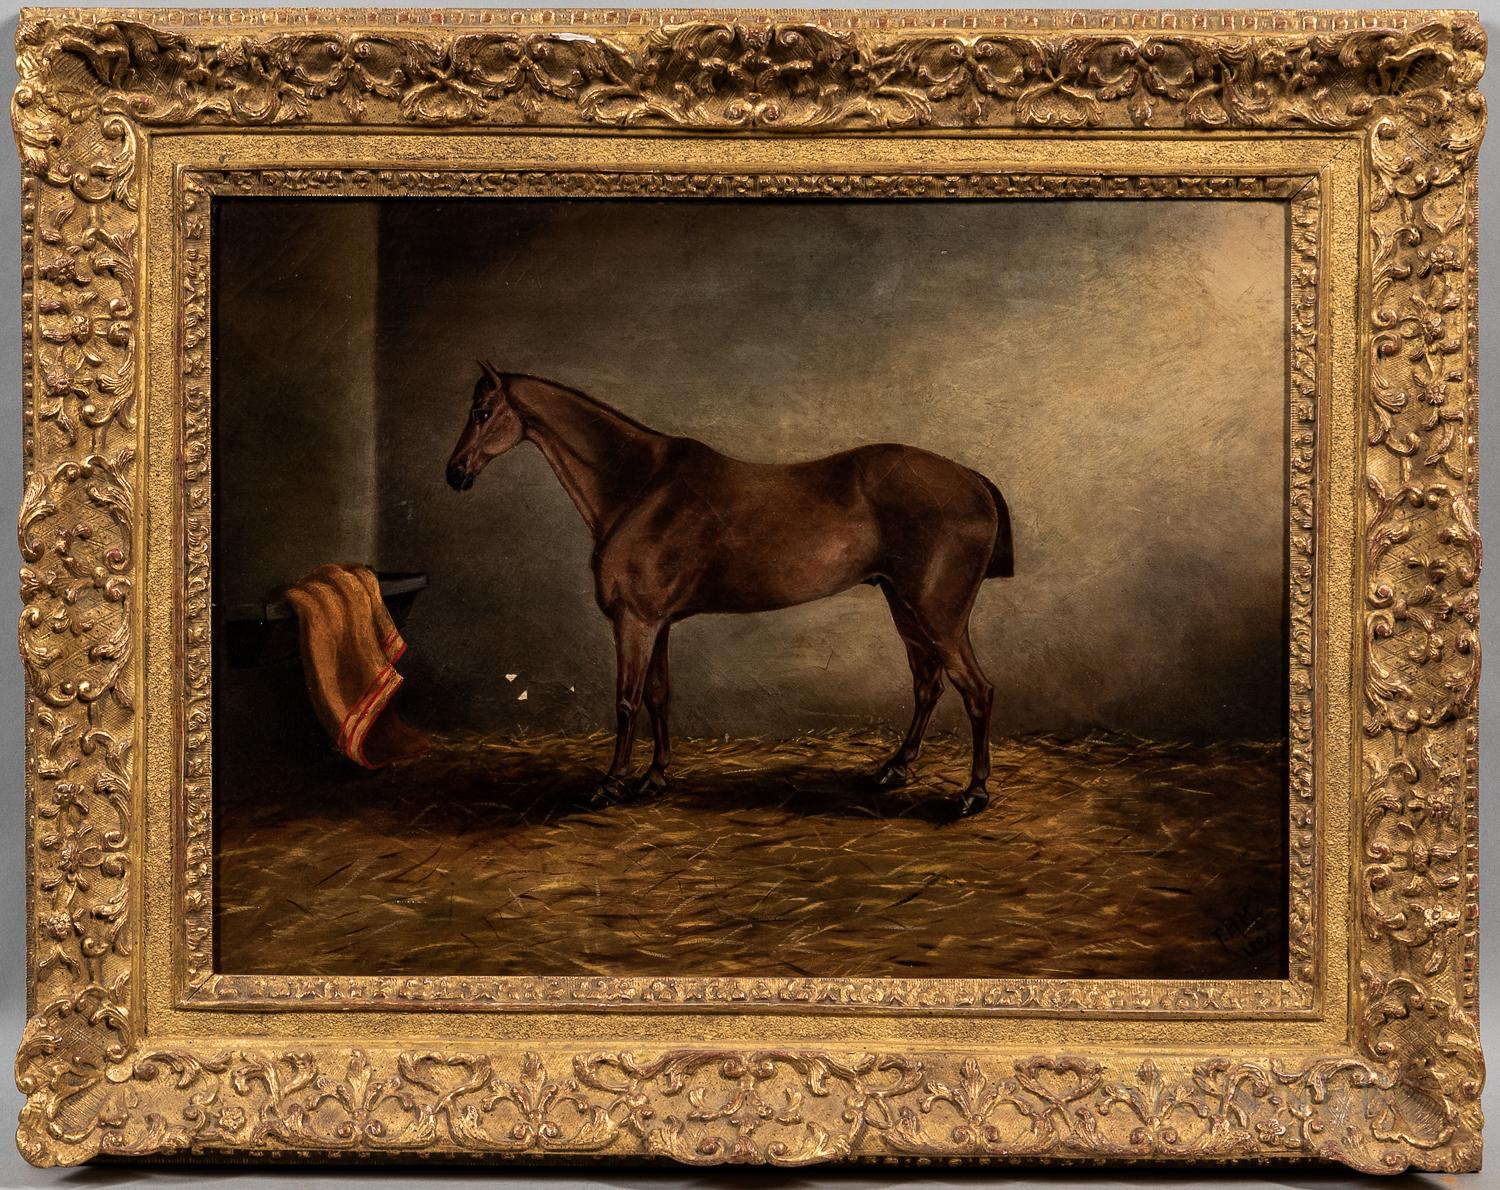 Anglo/Irish School, 19th Century      Horse with a Docked Tail, Standing in a Stall